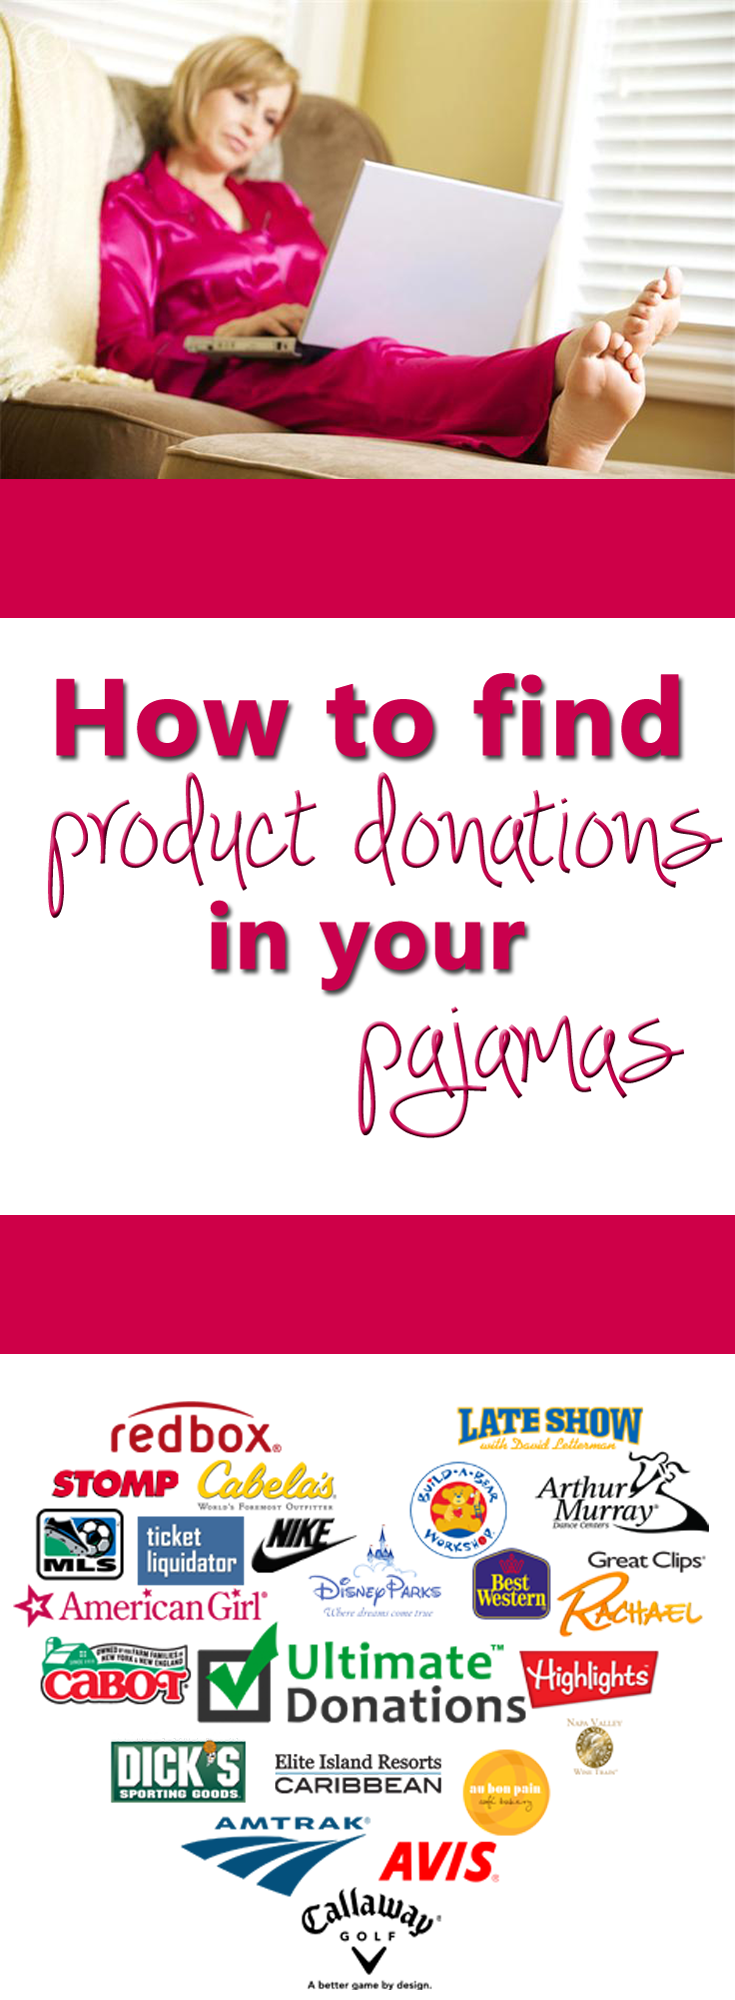 UltimateDonations.org: How to find product donations in your pajamas copy